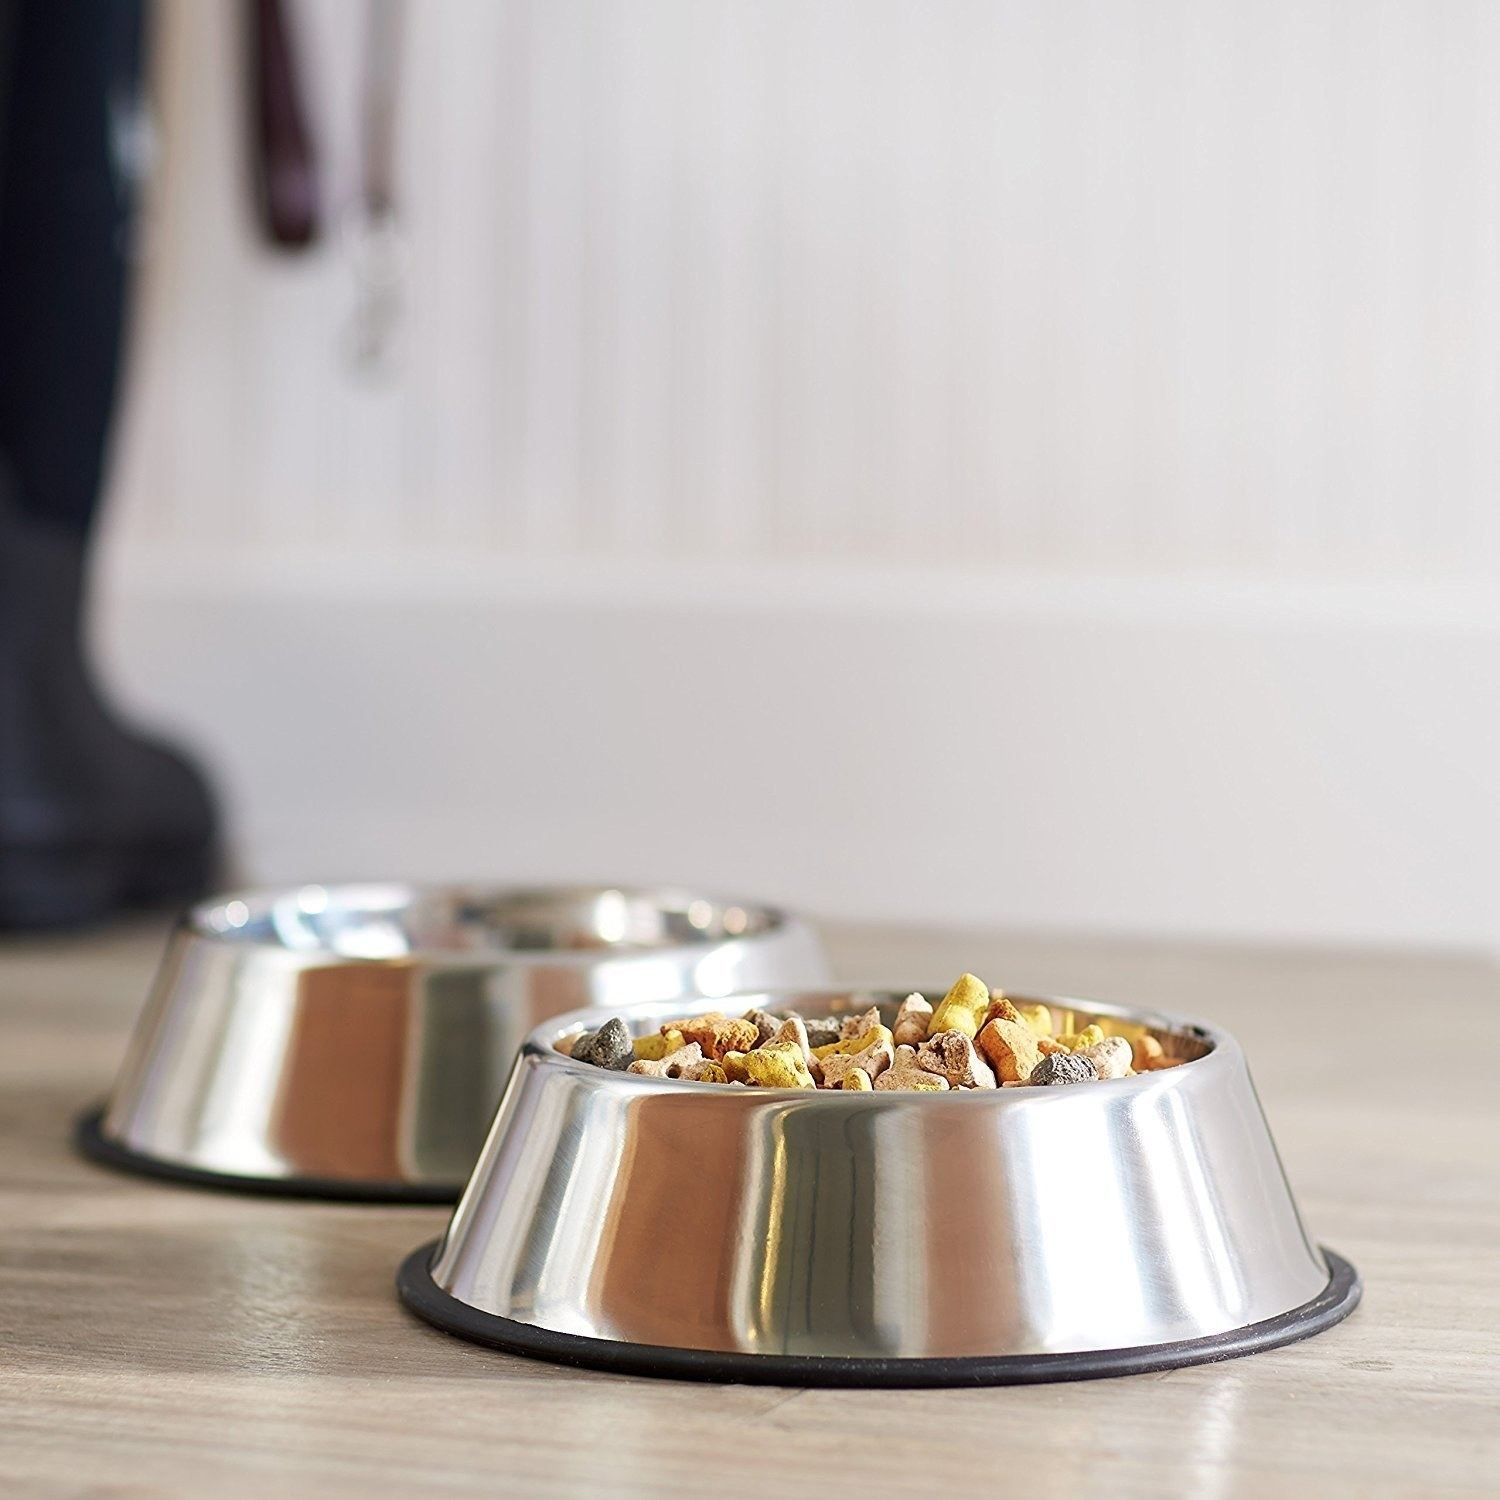 2 stainless steel bowls with food and water for pets.